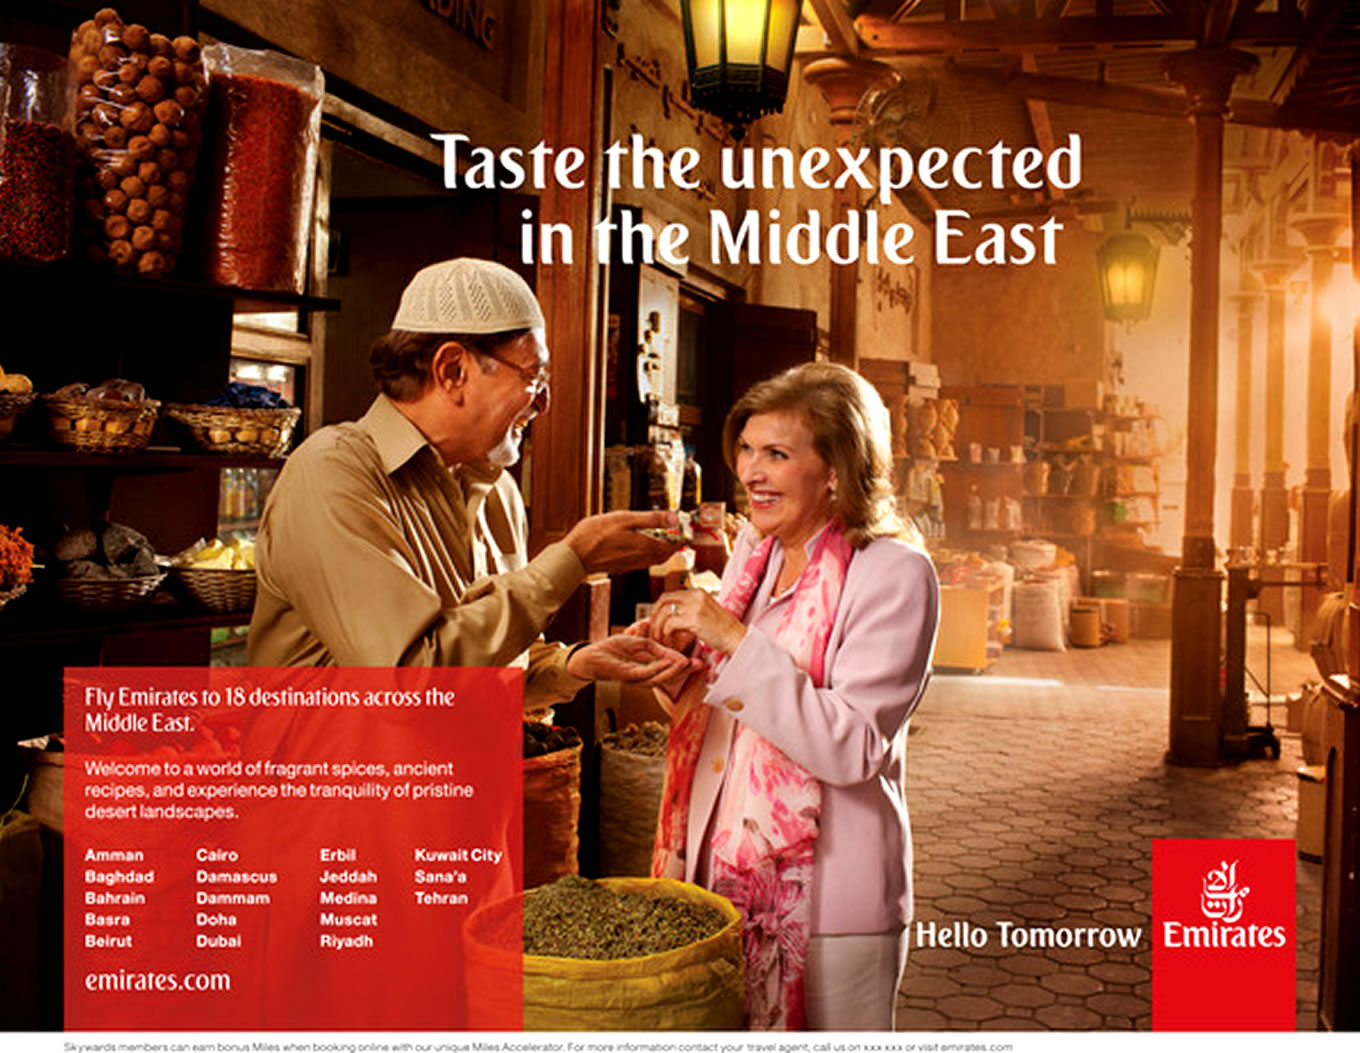 Destination Middle East, Hello Tomorrow Marketing Campaign by Emirates Airlines